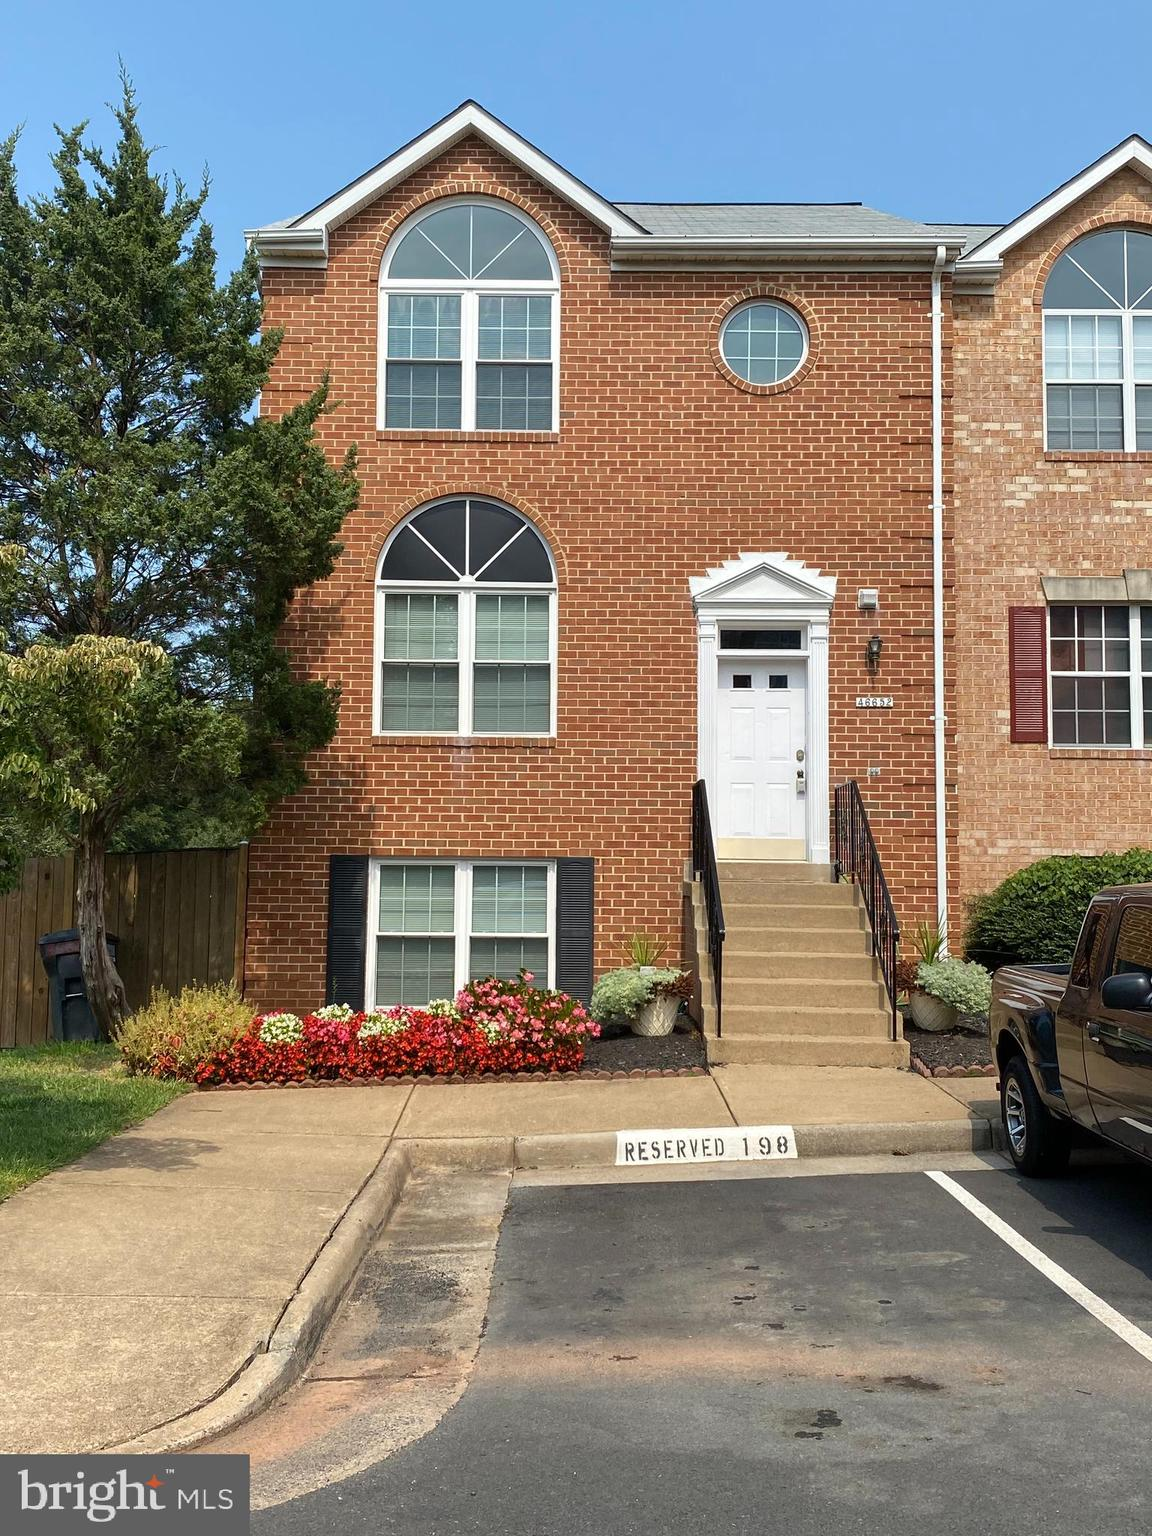 Beautiful end unit, all brick town home. 4 bedrooms, 3.5 bathrooms. Large kitchen with fireplace. St